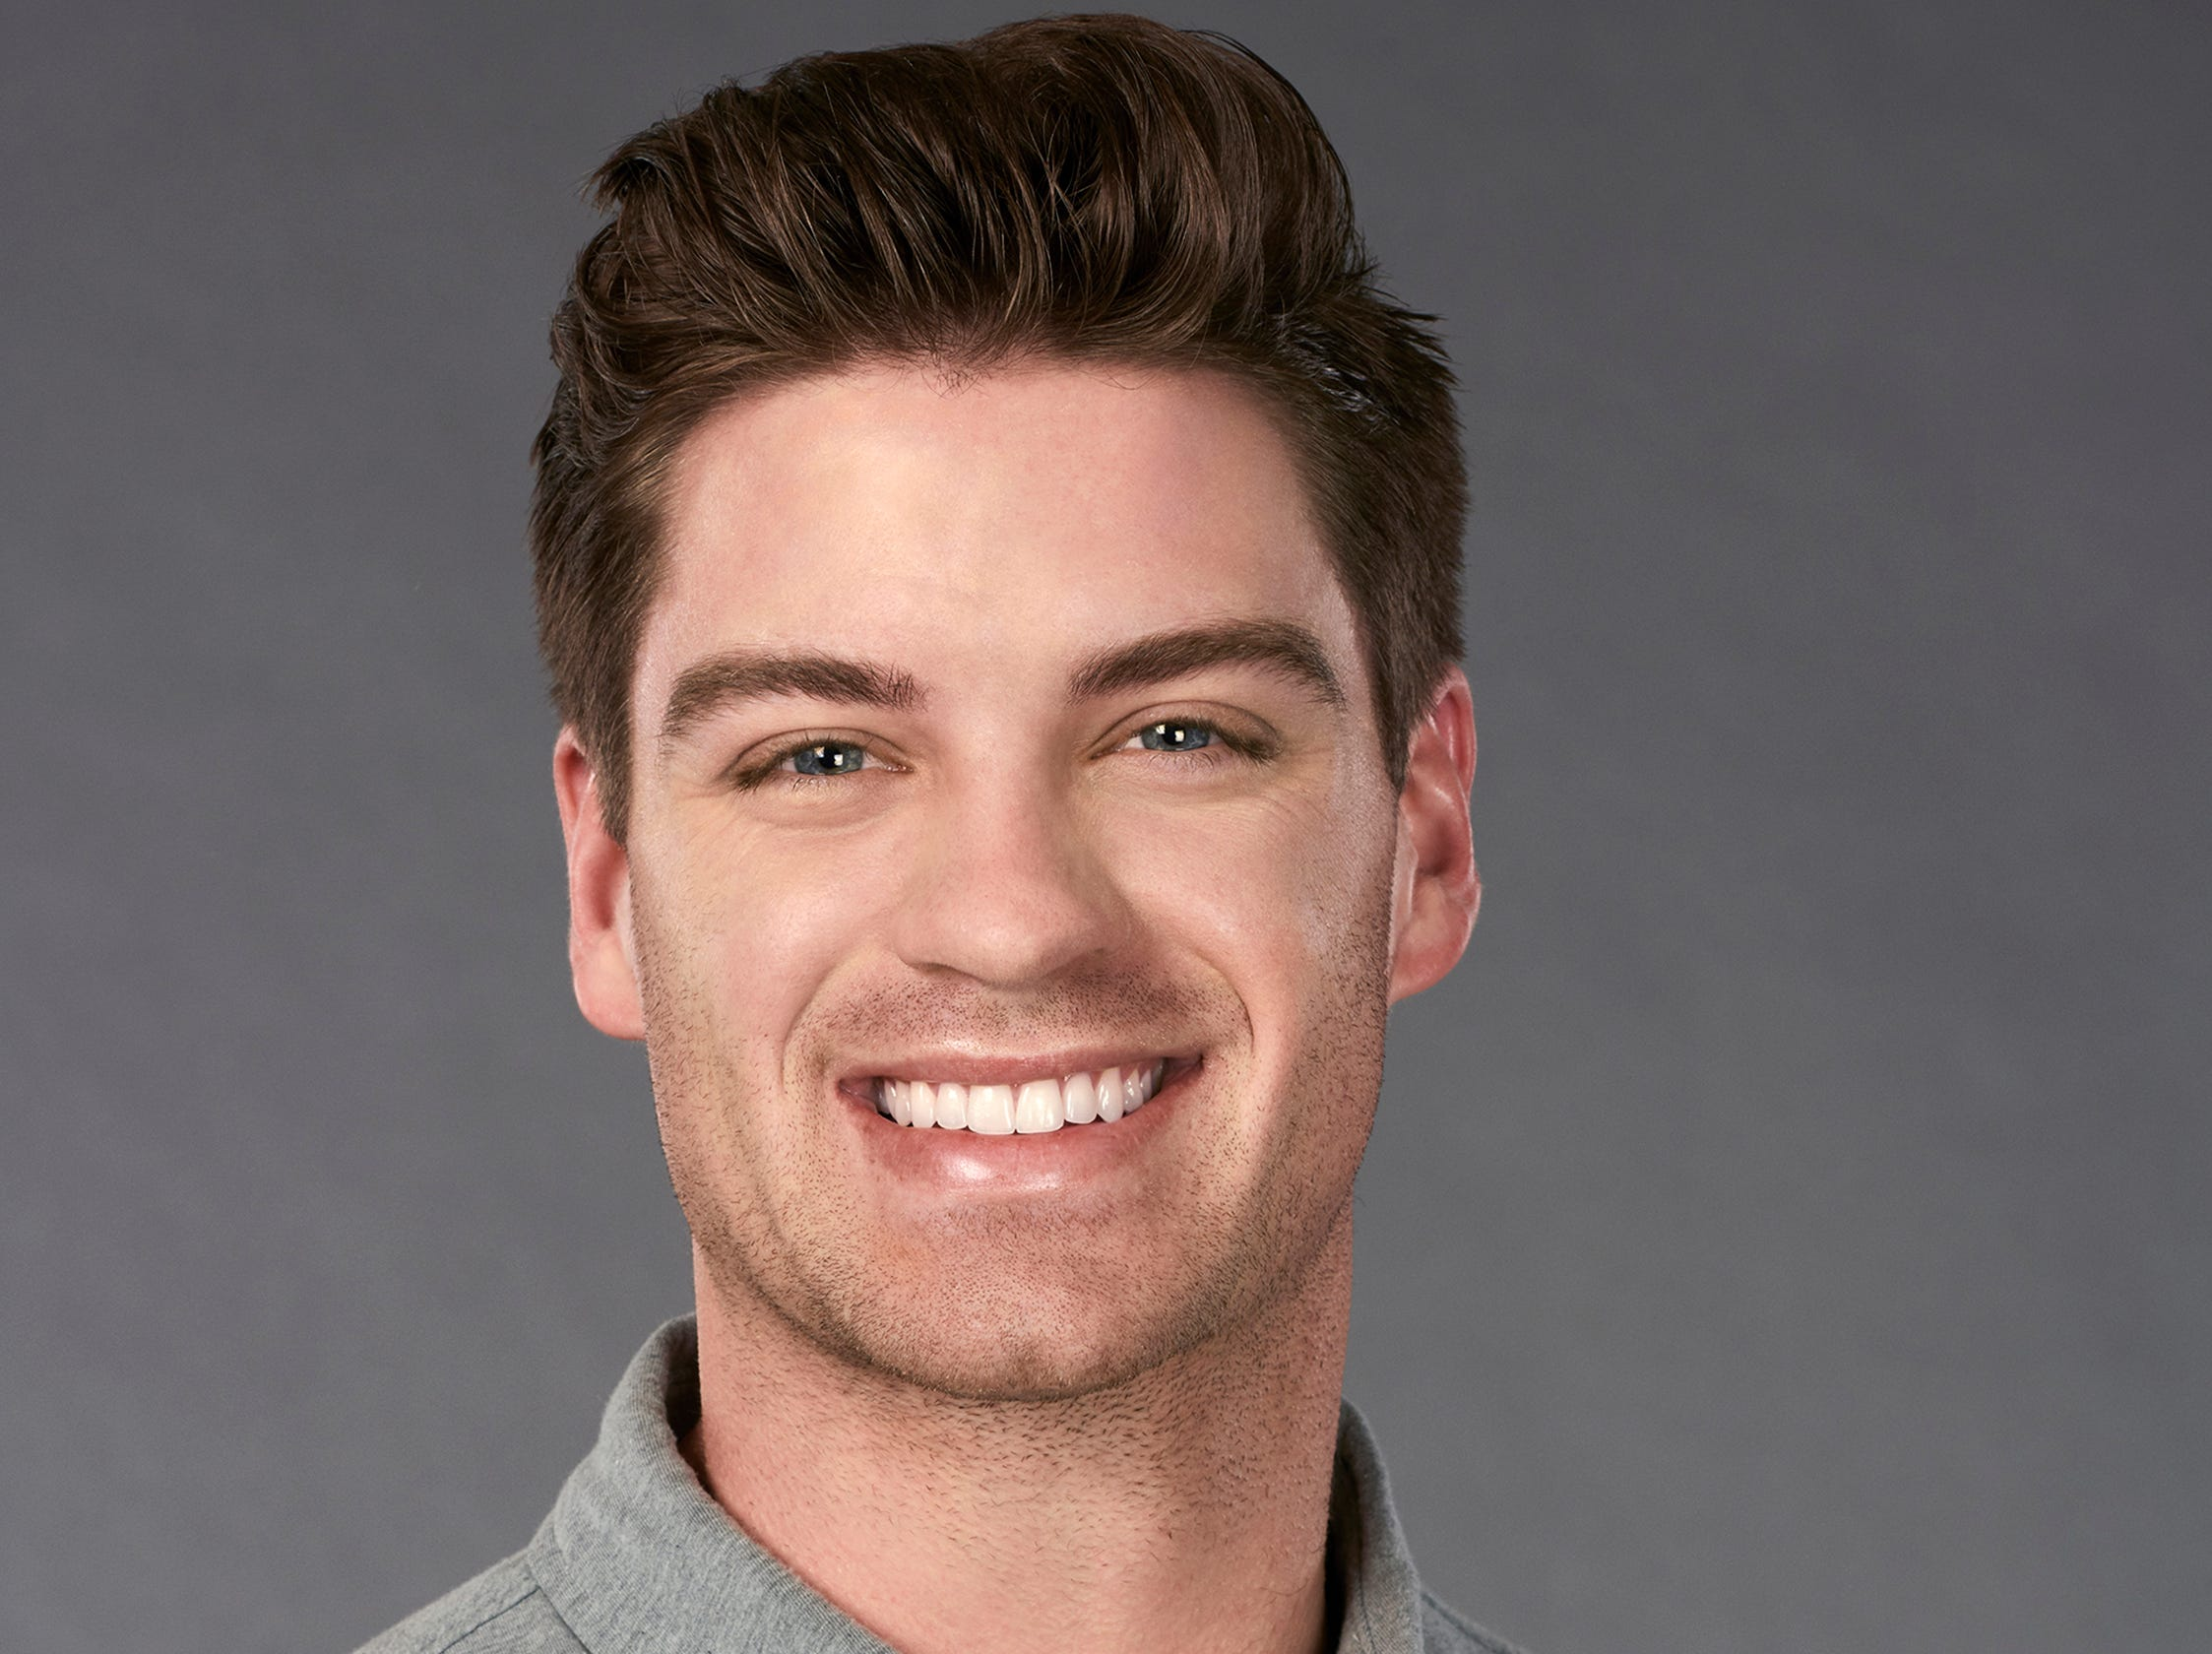 """The Bachelorette"" Season 23 contestant:  Garrett, 27, Birmingham, Alabama, golf pro"